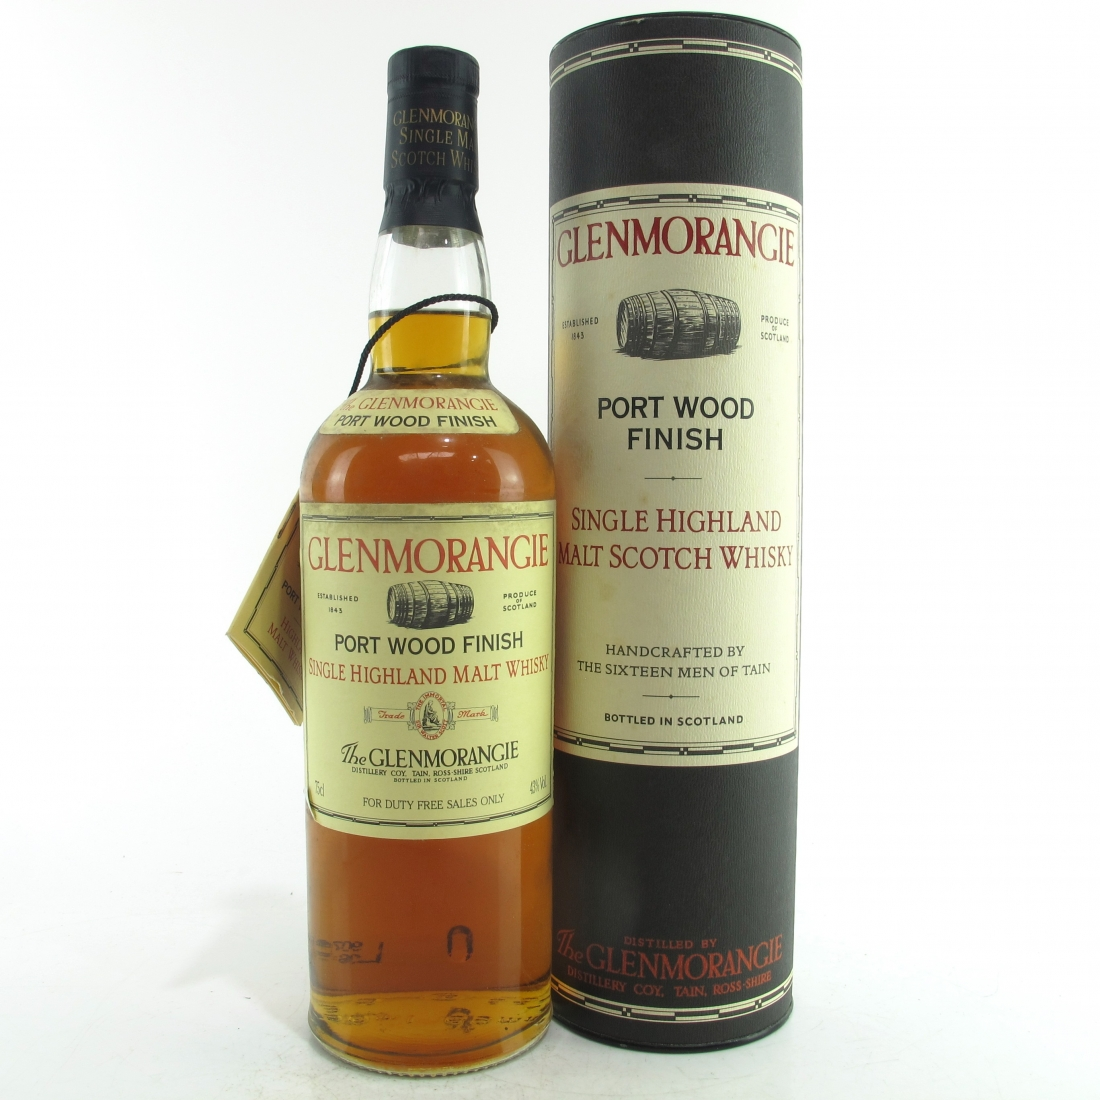 Glenmorangie Port Wood Finish 75cl